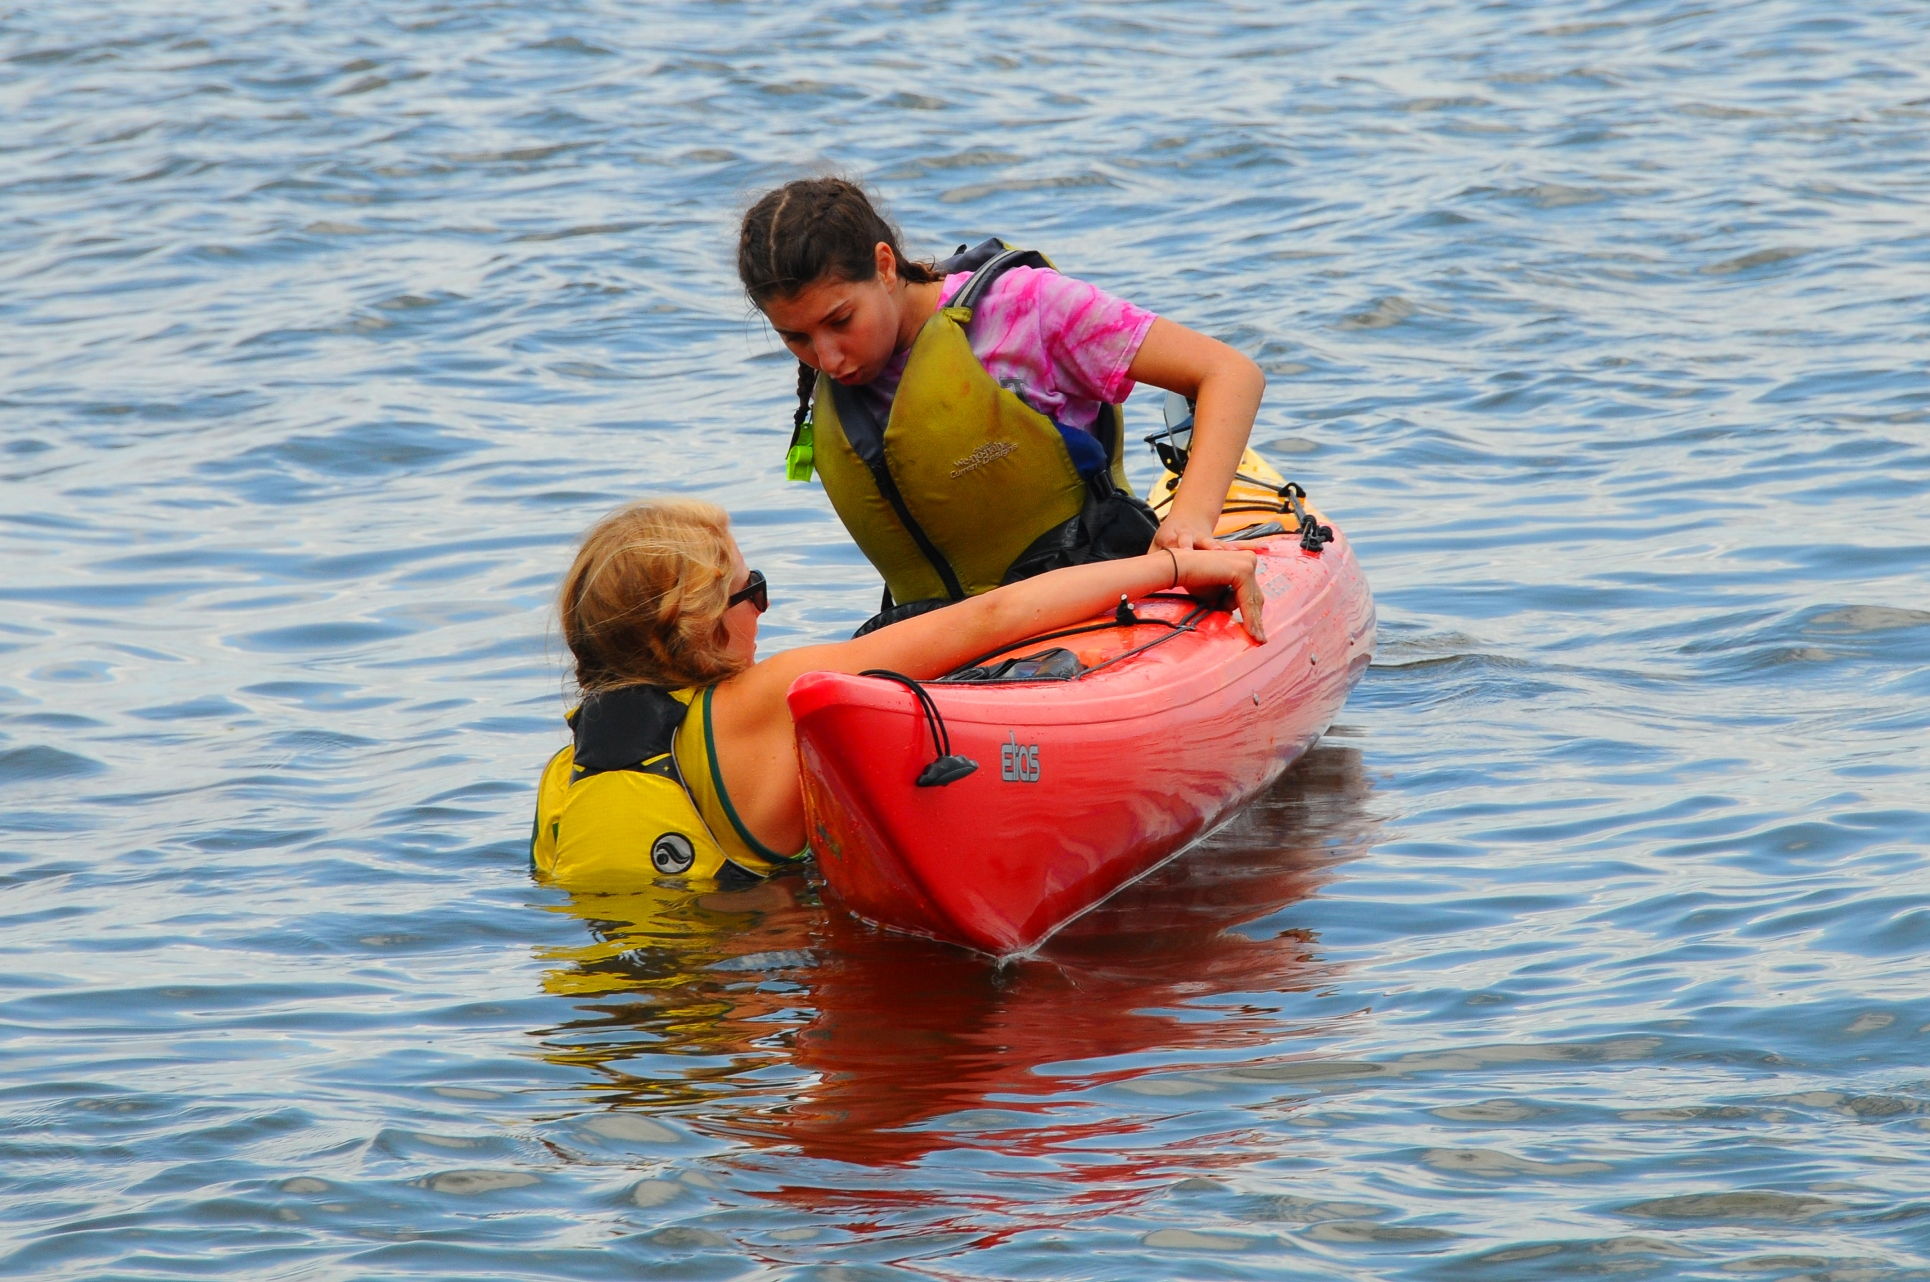 Instructor Lindsay Land (left) shows crew member Alina Zasloff what to do when the kayak flips. (Peter Turcik)